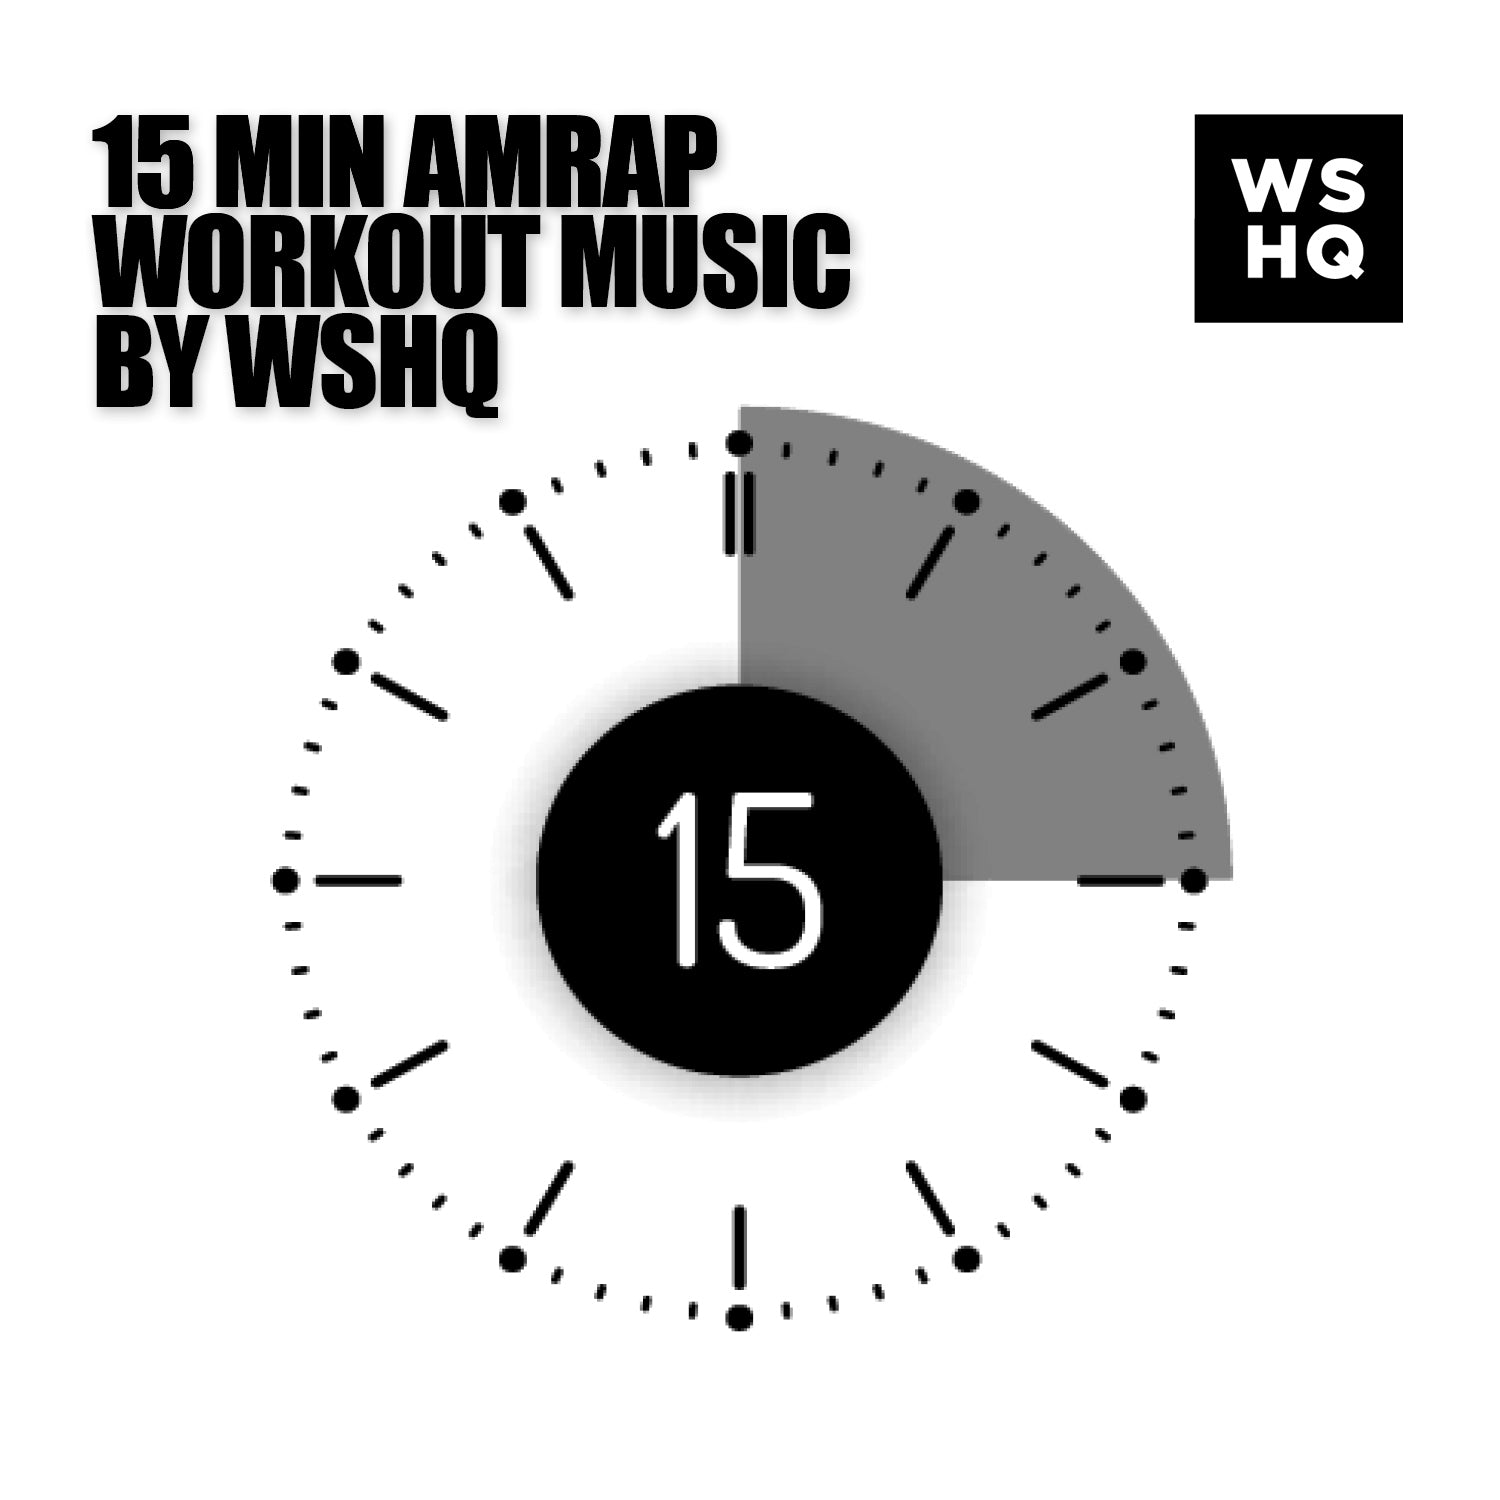 15 minute timer for amrap workout music by wshq